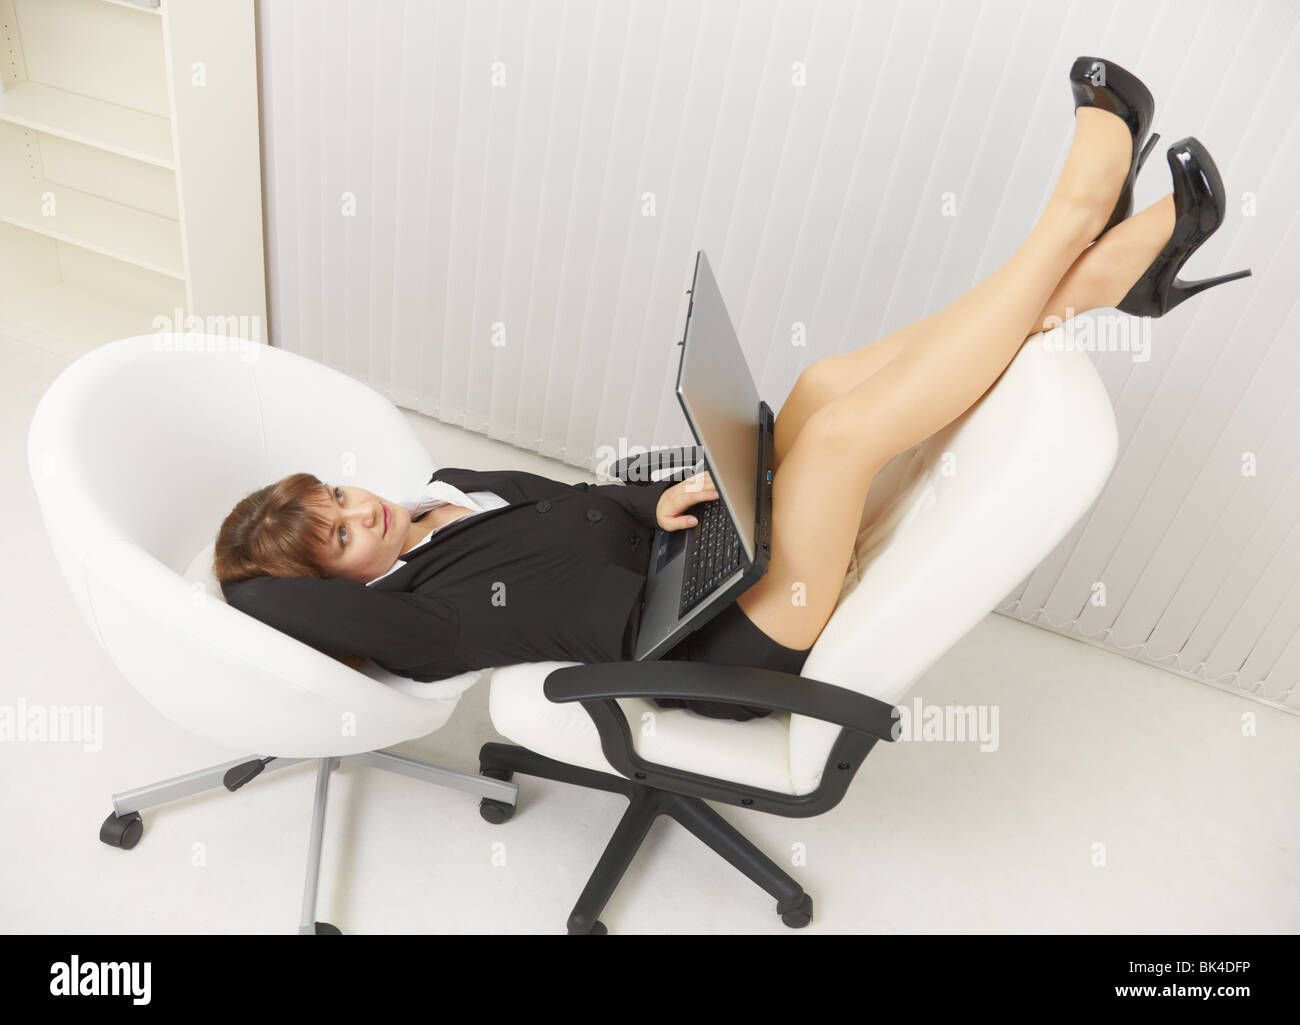 Legs Young Woman In Pantyhose Stock Photos Legs Young